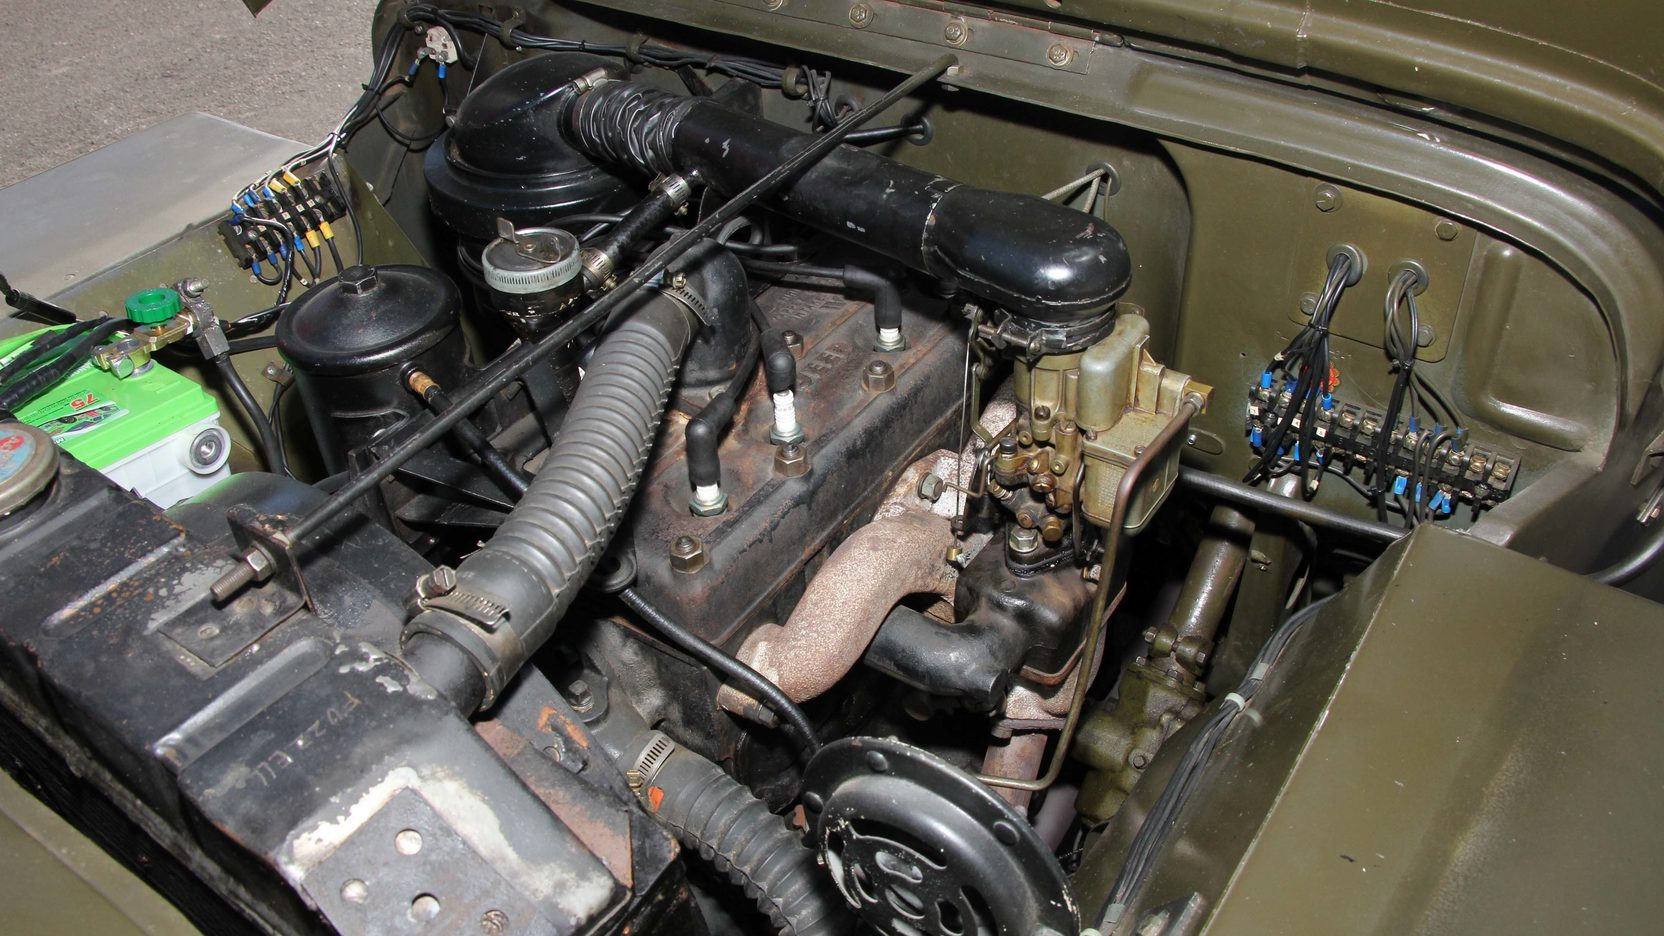 1948 Willys Military Jeep Engine